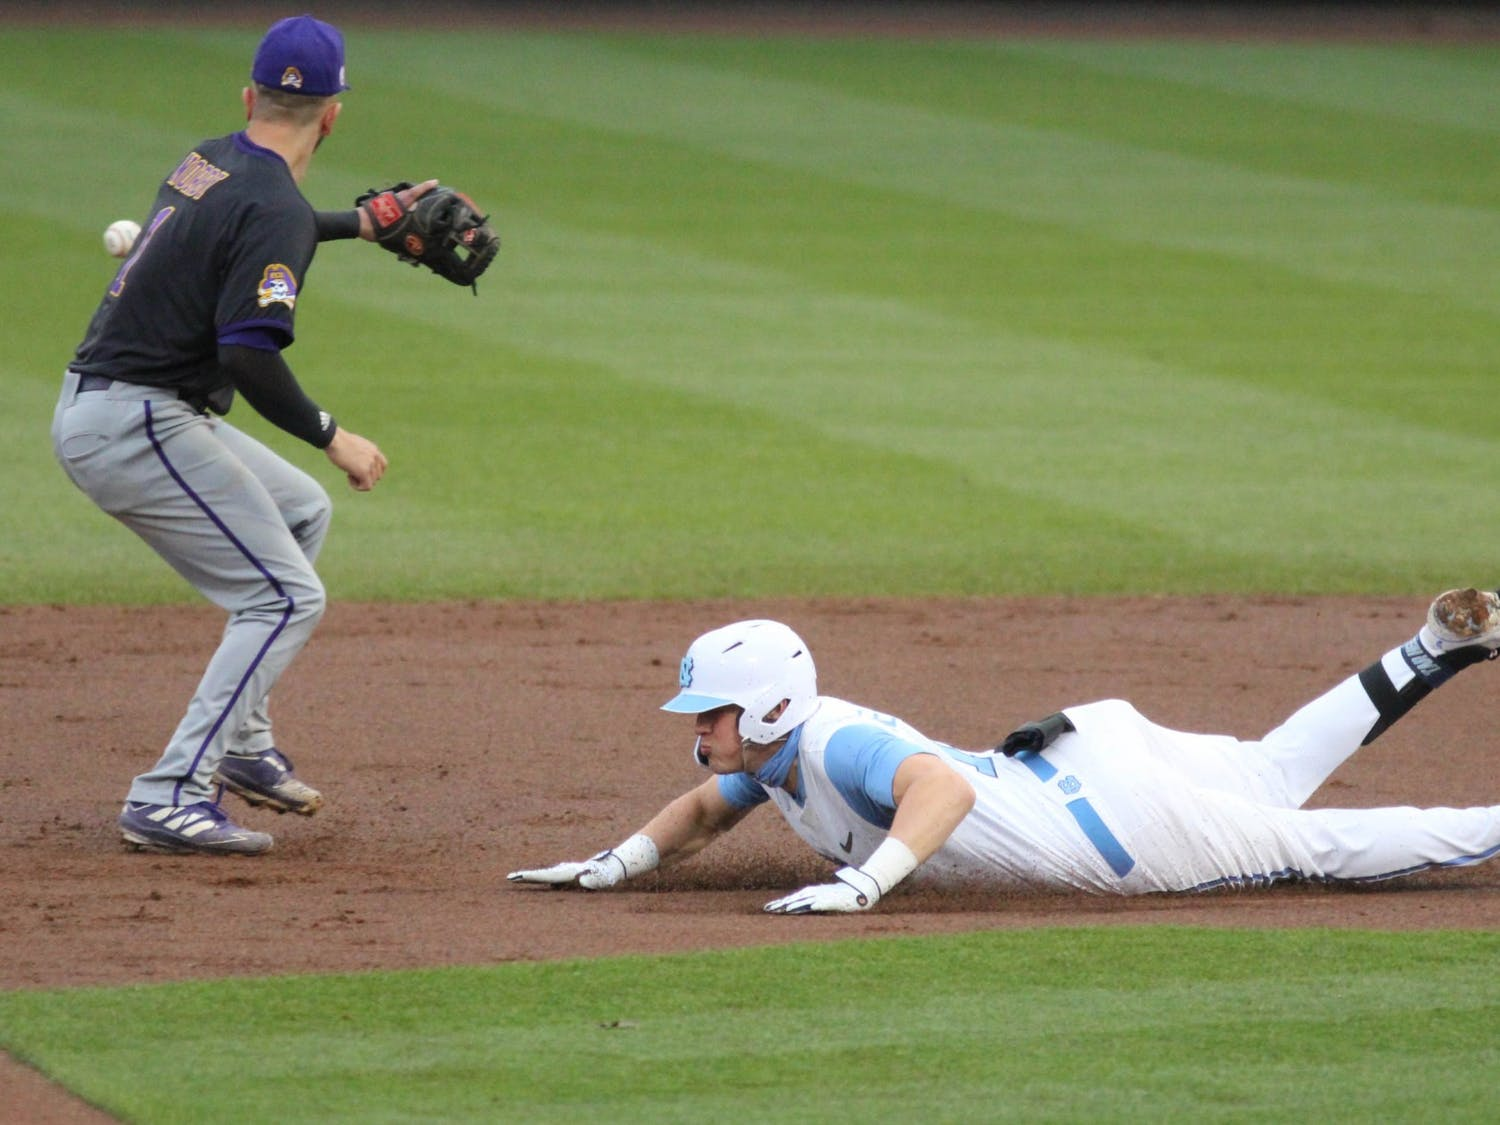 UNC junior right-handed pitcher Michael Oh (1) attempts to slide into first base before getting tagged out by ECU infielder Connor Norby during the Tar Heels' game against East Carolina University at Boshamer Stadium on March 23, 2021. The Tar Heels defeated the Pirates 8-1.